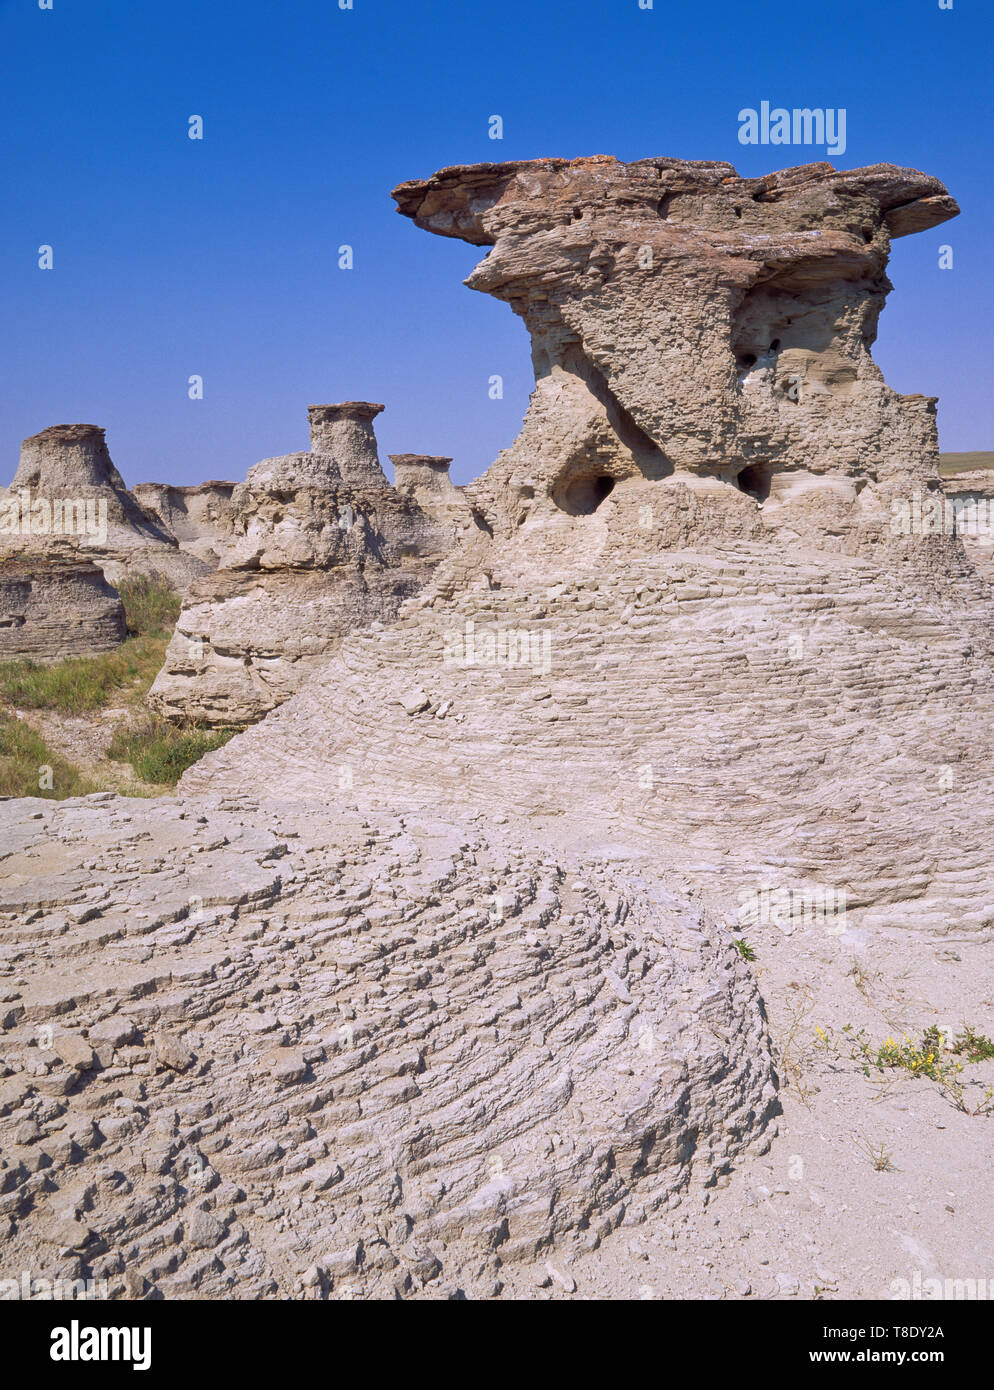 sandstone hoodoos at an area locally known as rock city near valier, montana - Stock Image